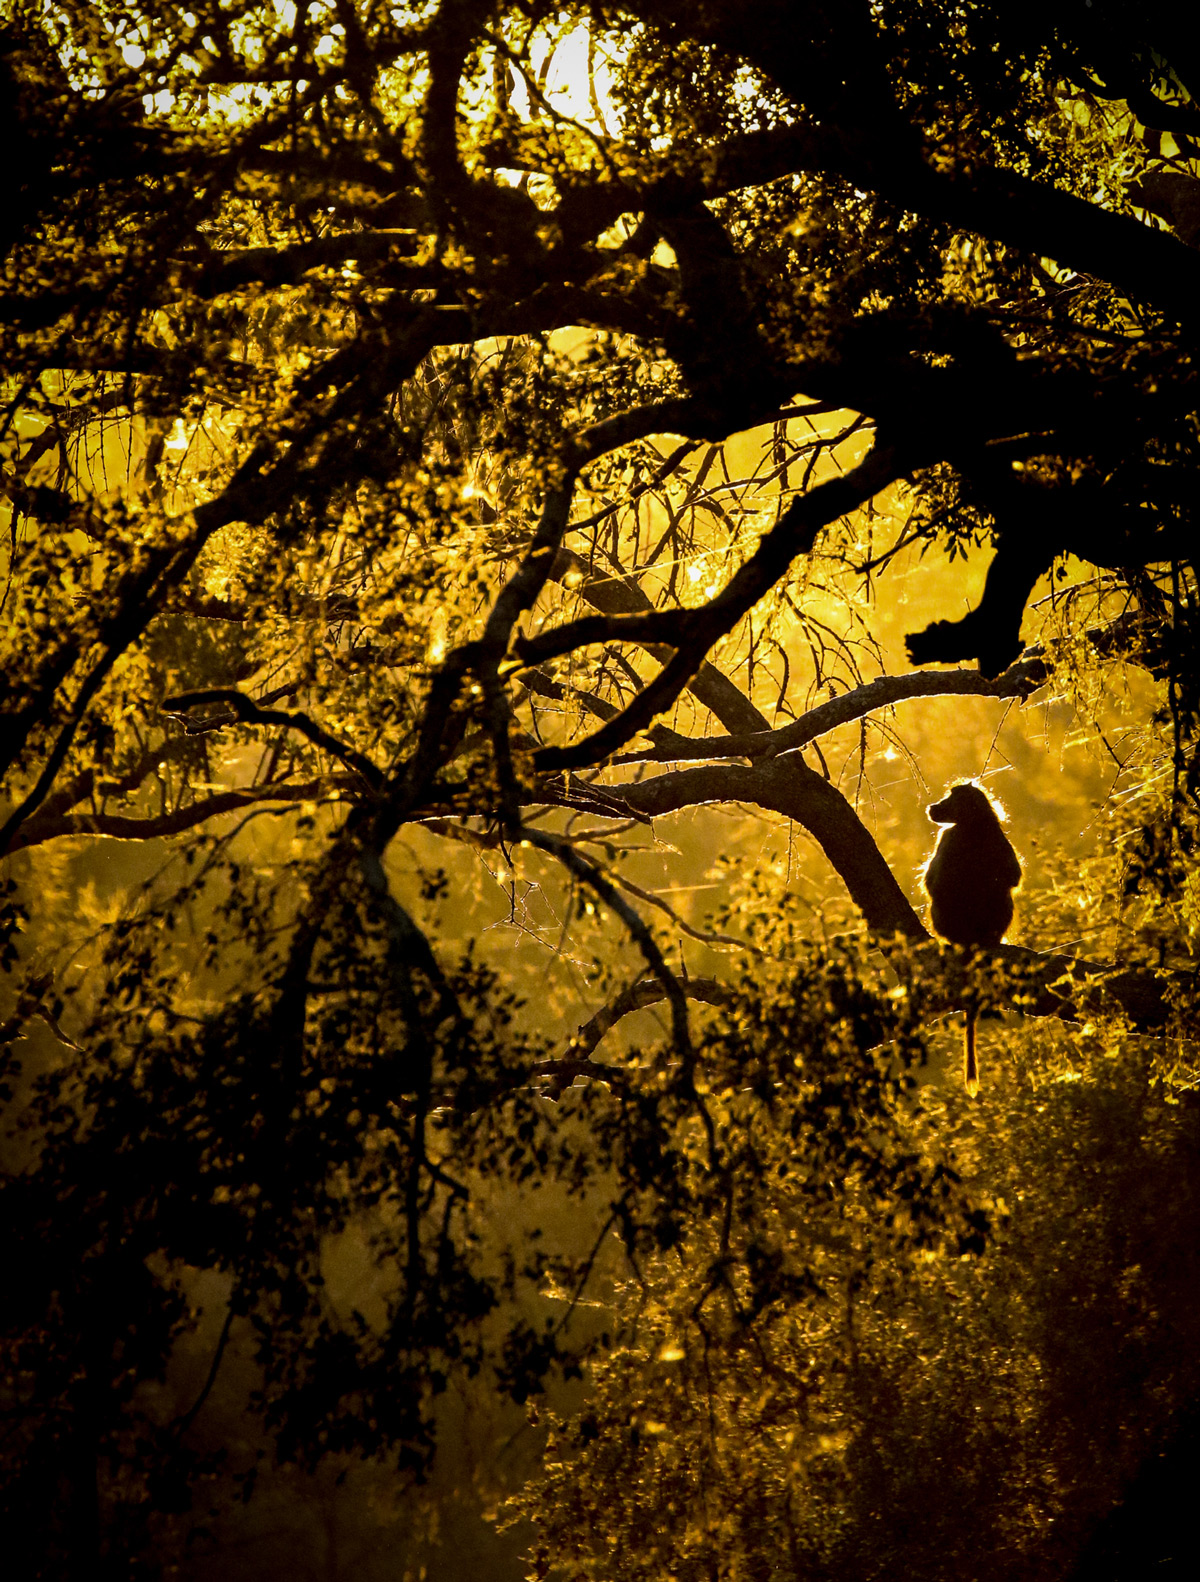 A baboon at sunset in Sabi Sands Private Game Reserve, South Africa © Janine Malan